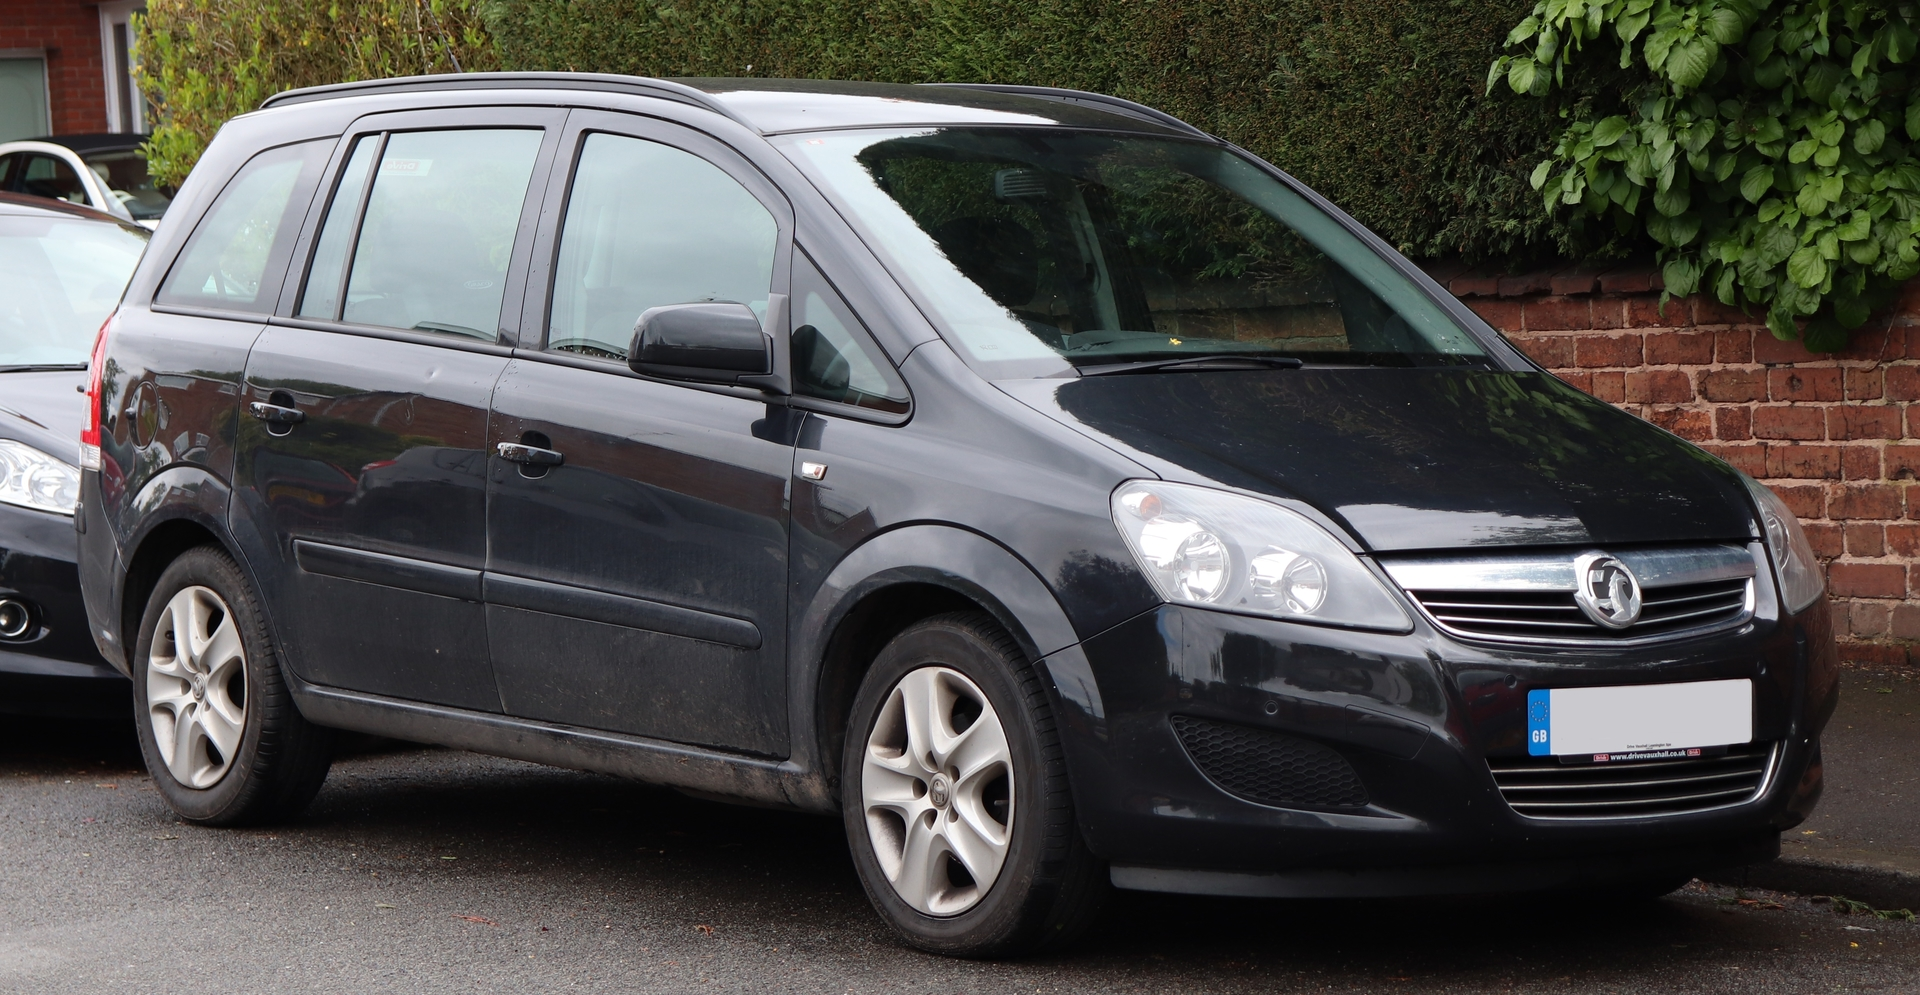 Large family used car Zafira